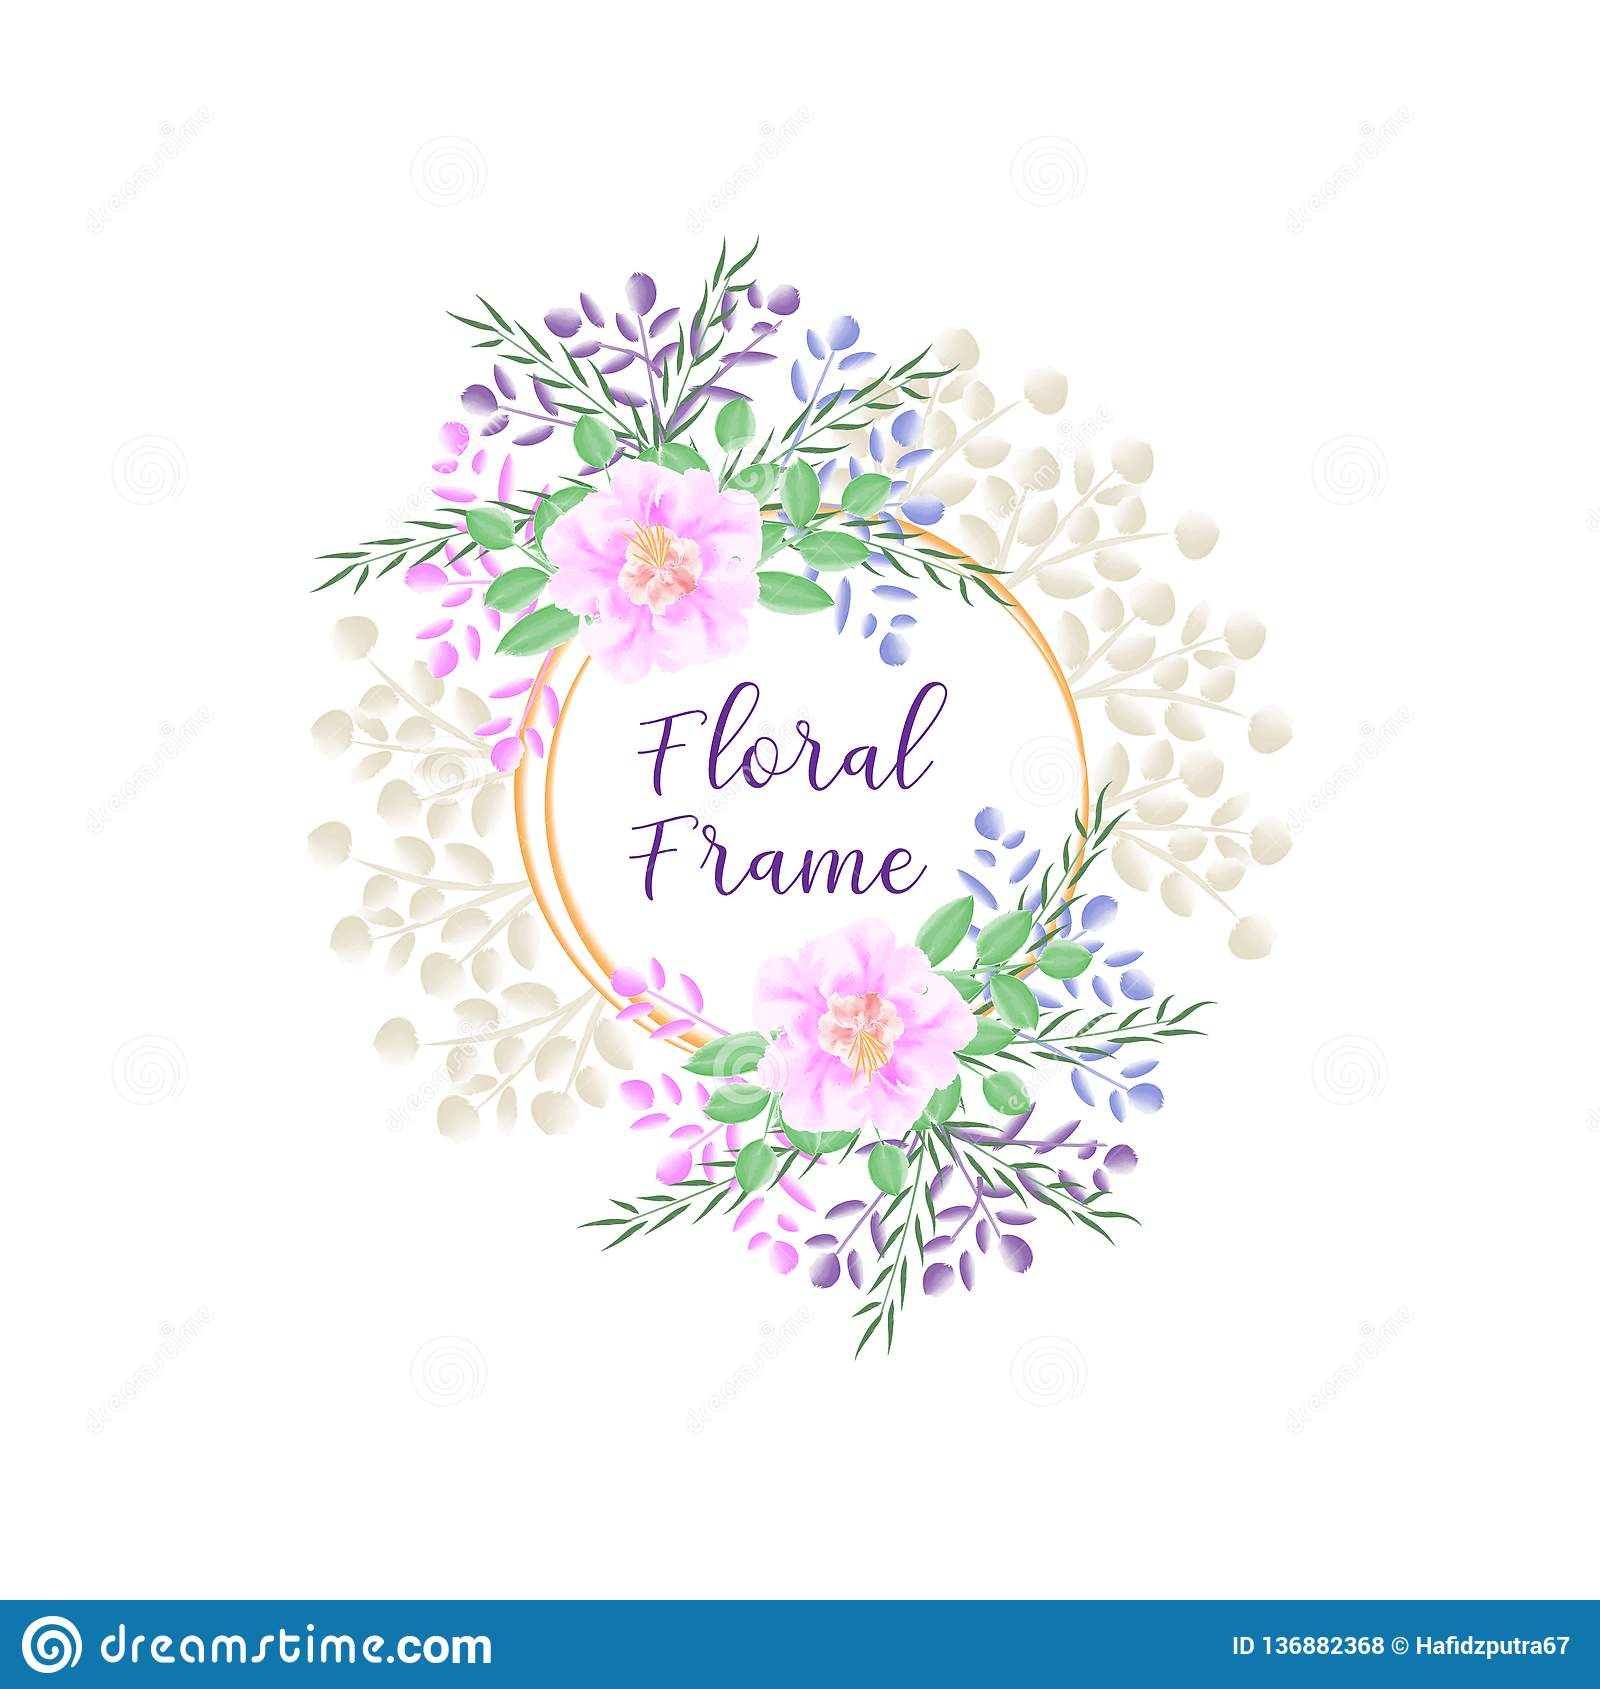 Floral frame with floral watercolor and elegant concept